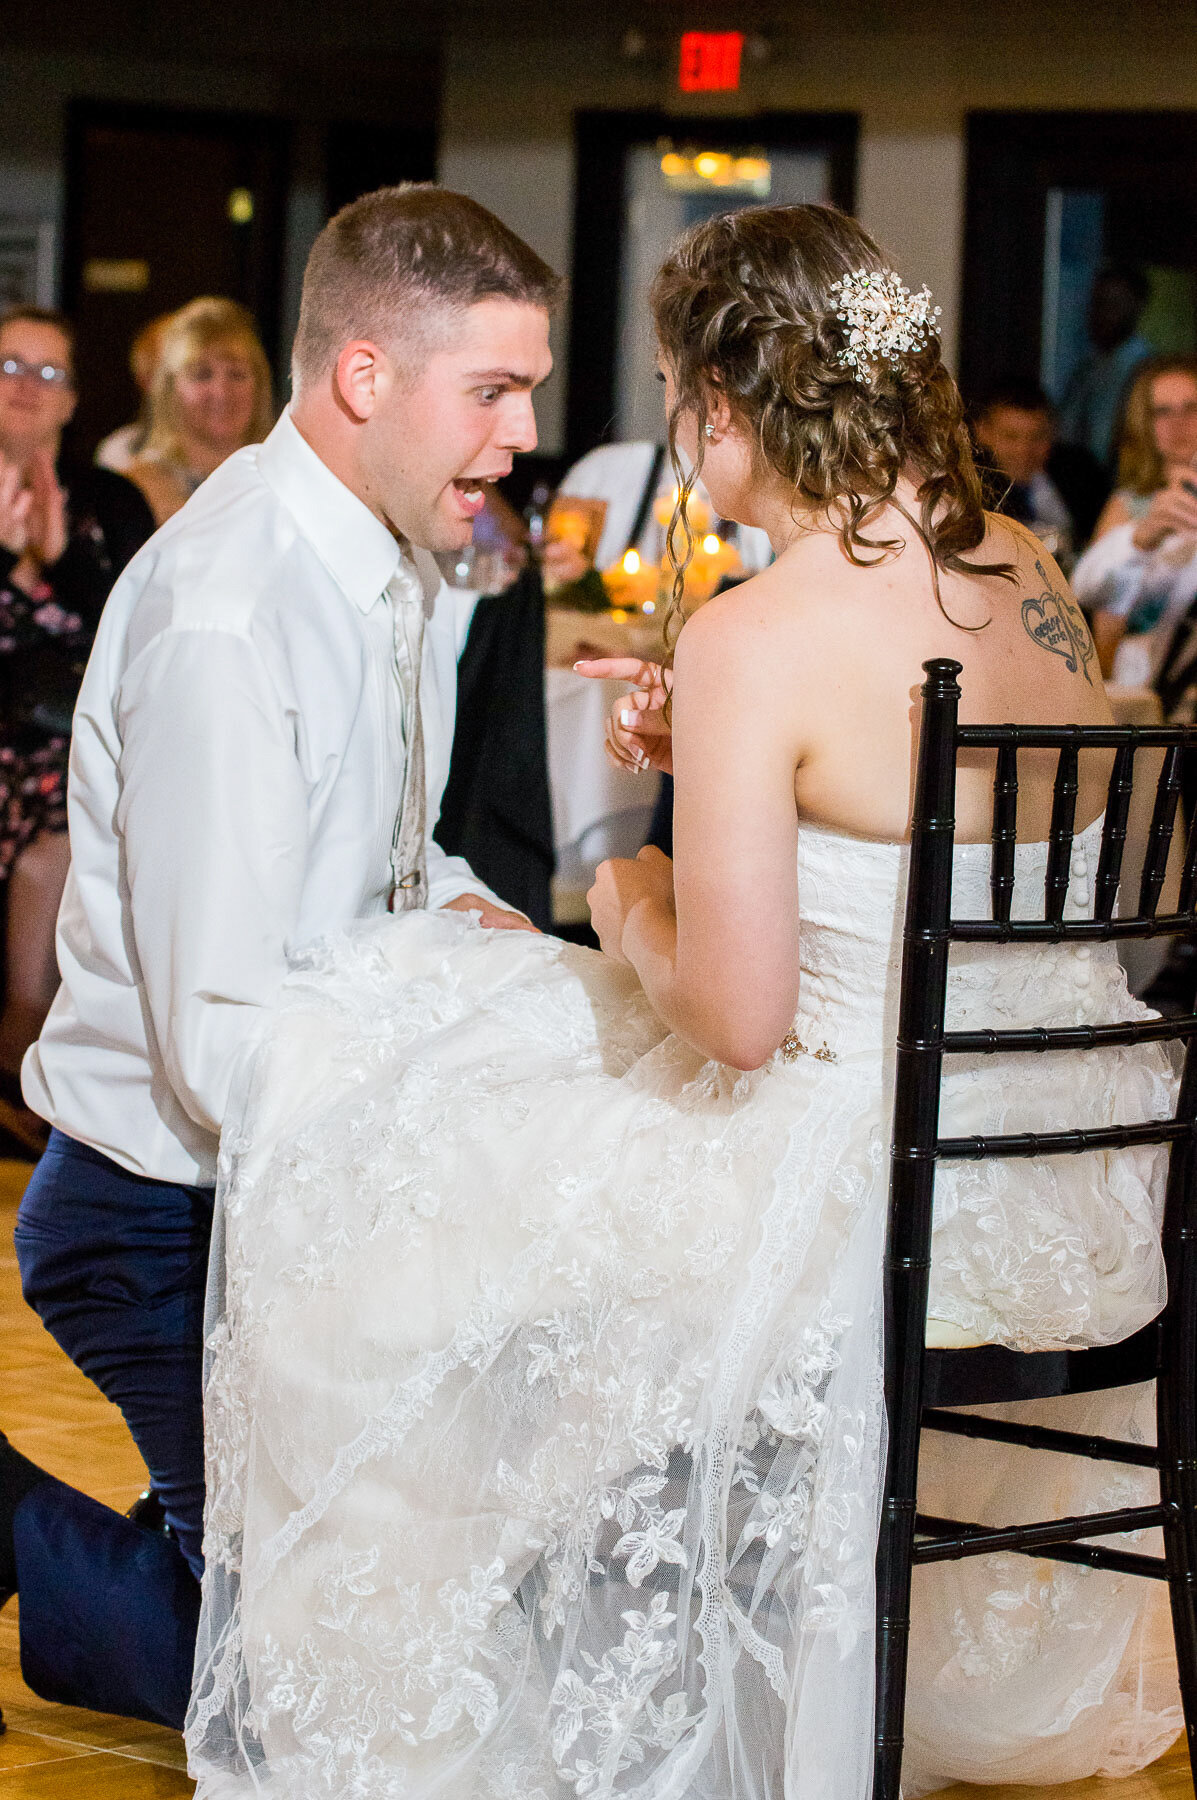 Ray getting rather excited as he tries and removes the garter from Lindsay's leg at the Latitudes on the River